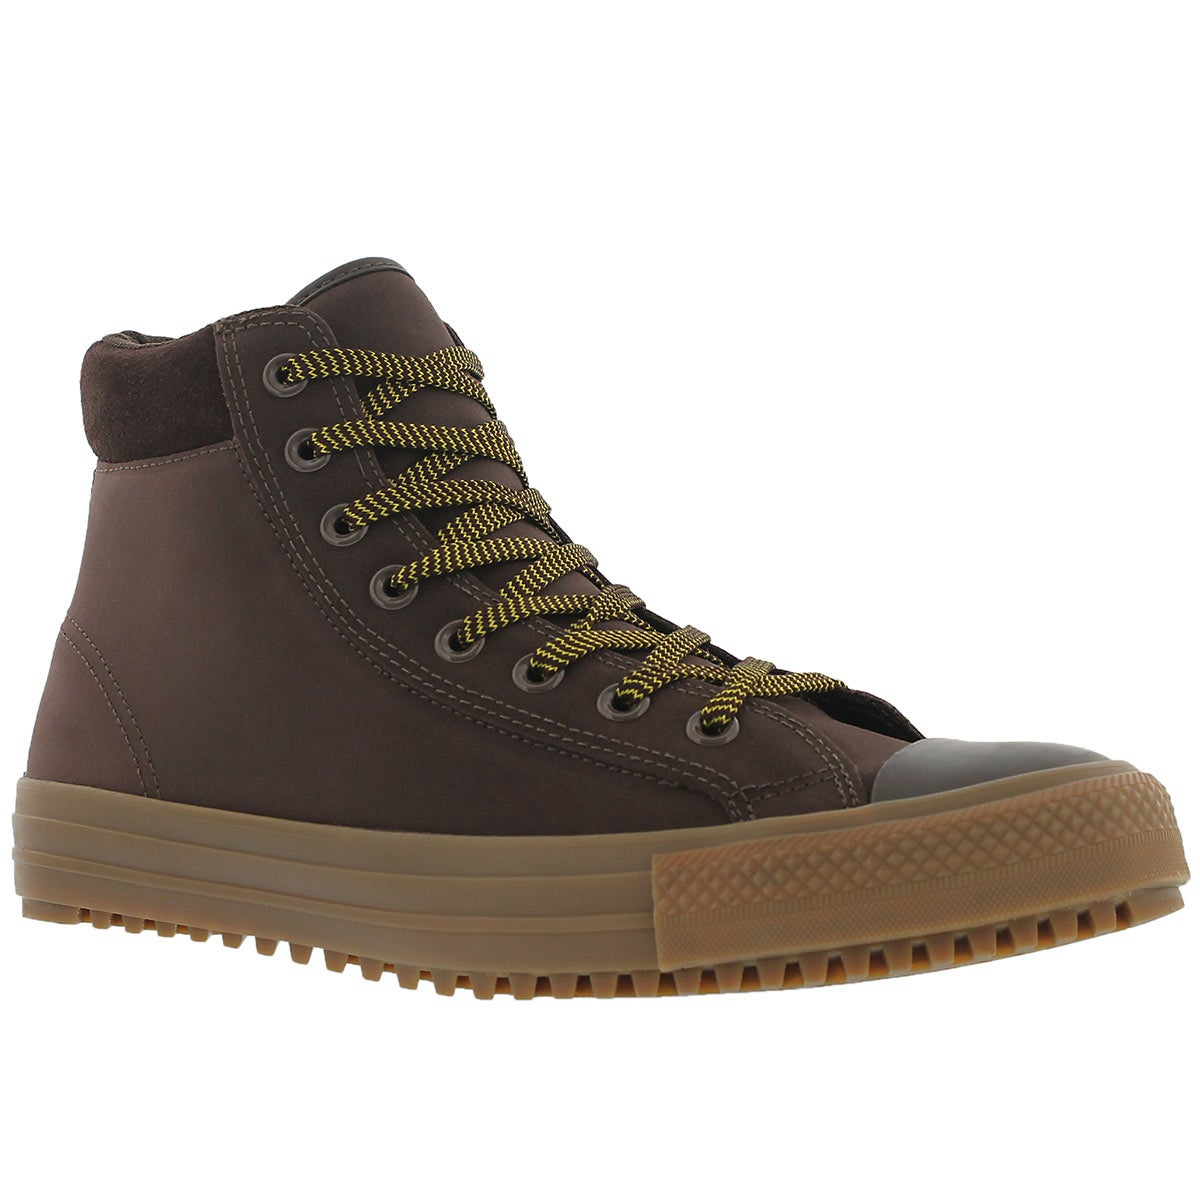 Bottines CT A/S CONVERSE PC C, cuir brun, hommes